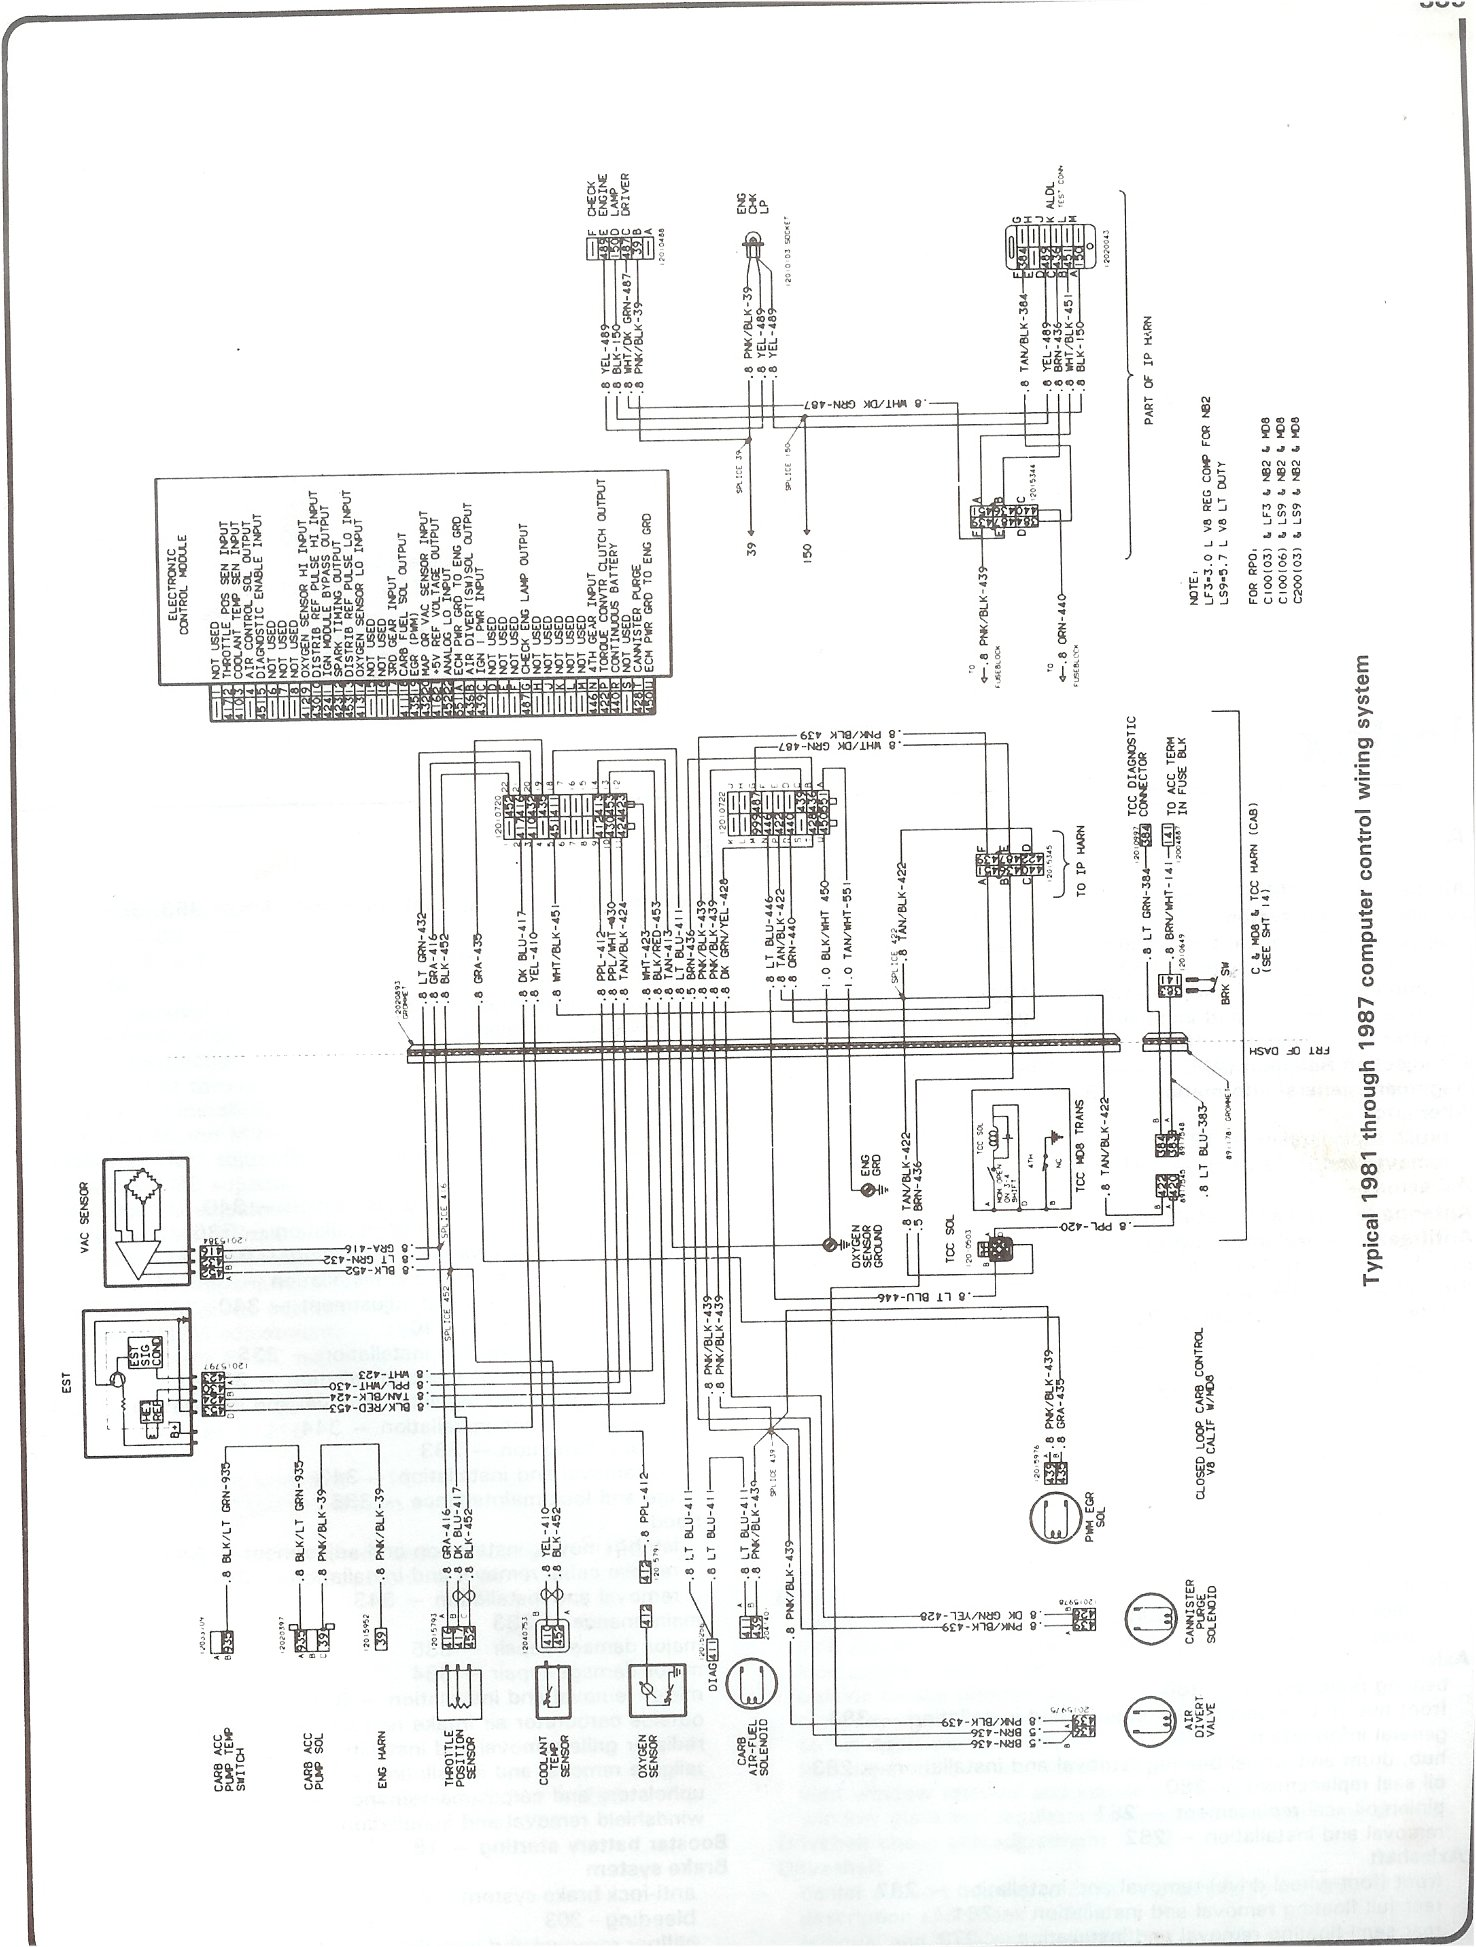 hight resolution of 1987 chevy c10 wiring diagram wiring diagram detailed 1957 chevy headlight switch wiring diagram 85 chevy truck wiring diagram